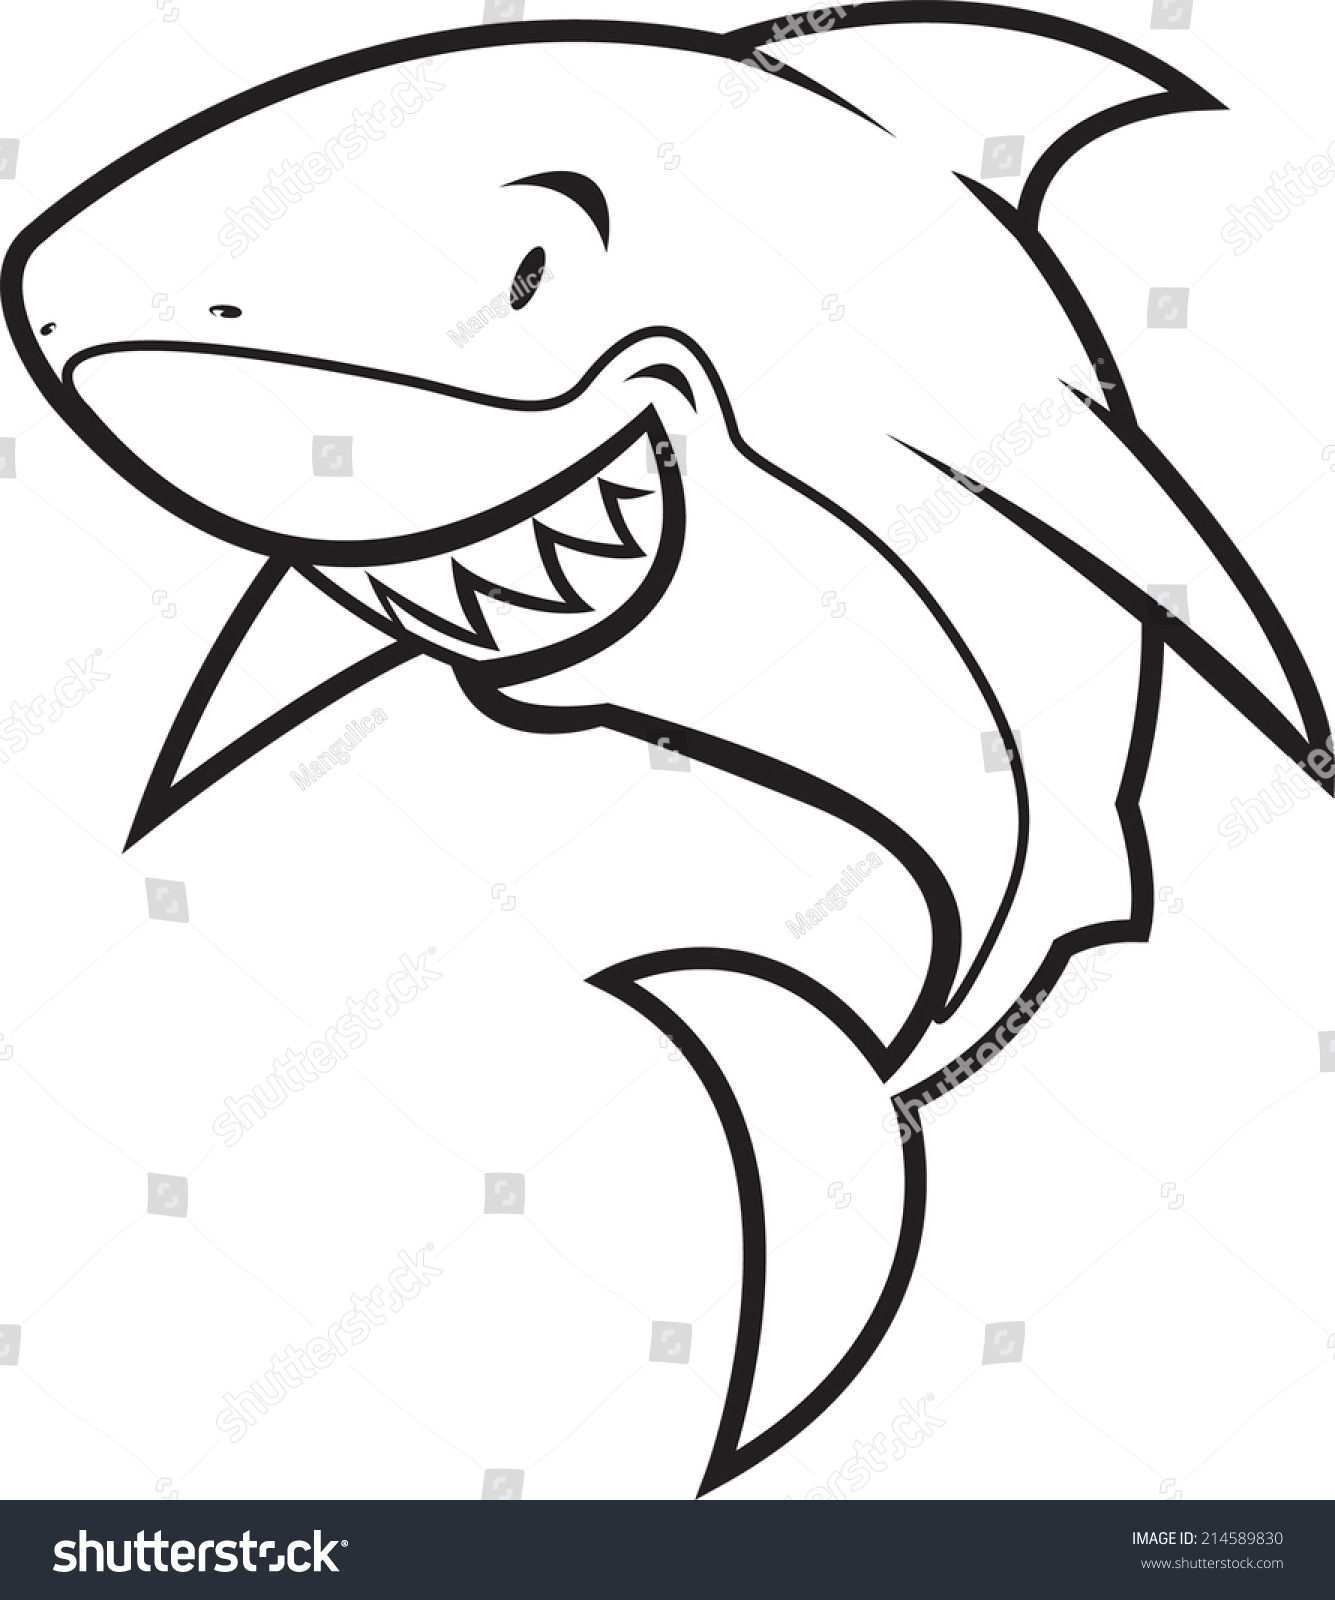 Coloring Book Shark Vector Illustration